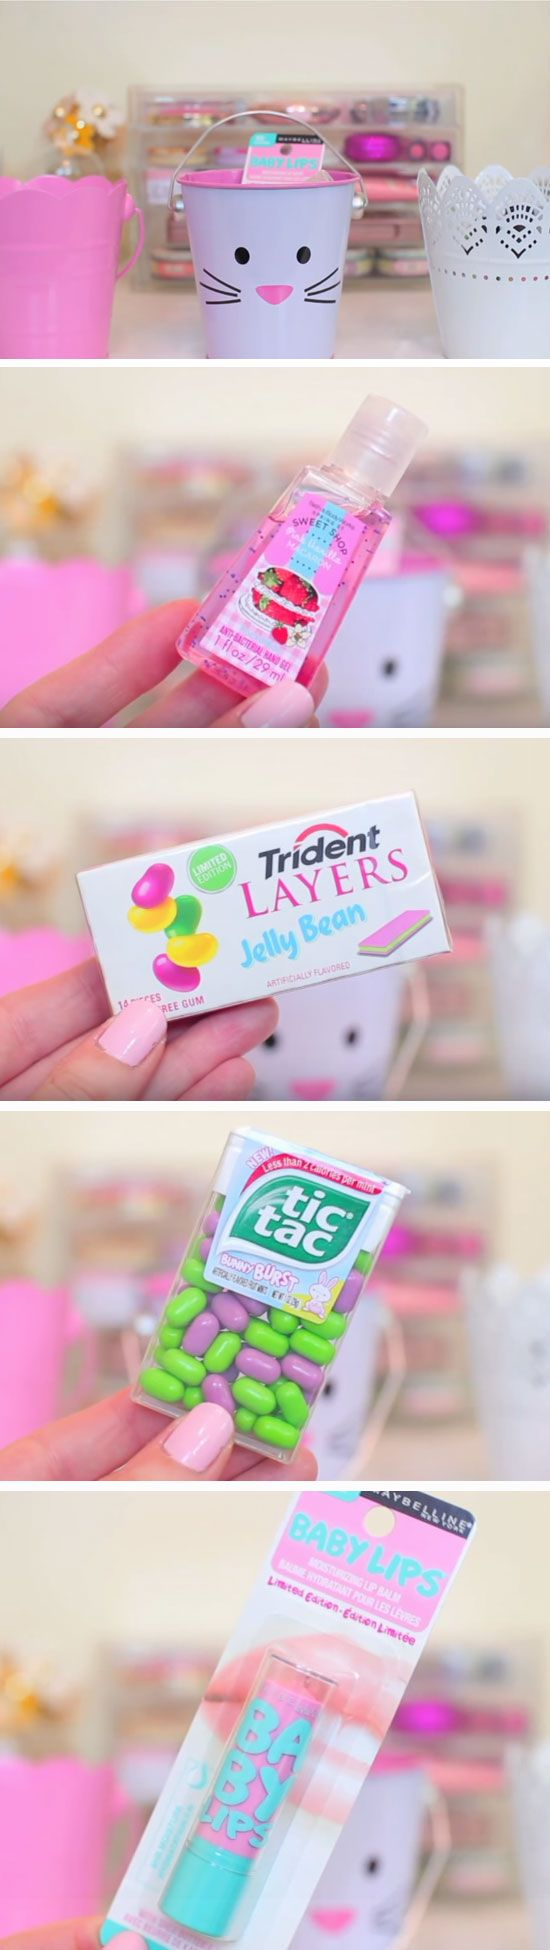 Cute Tins | Easy DIY Easter Basket Ideas for Teens | Easy Gift Ideas for Friends Birthday